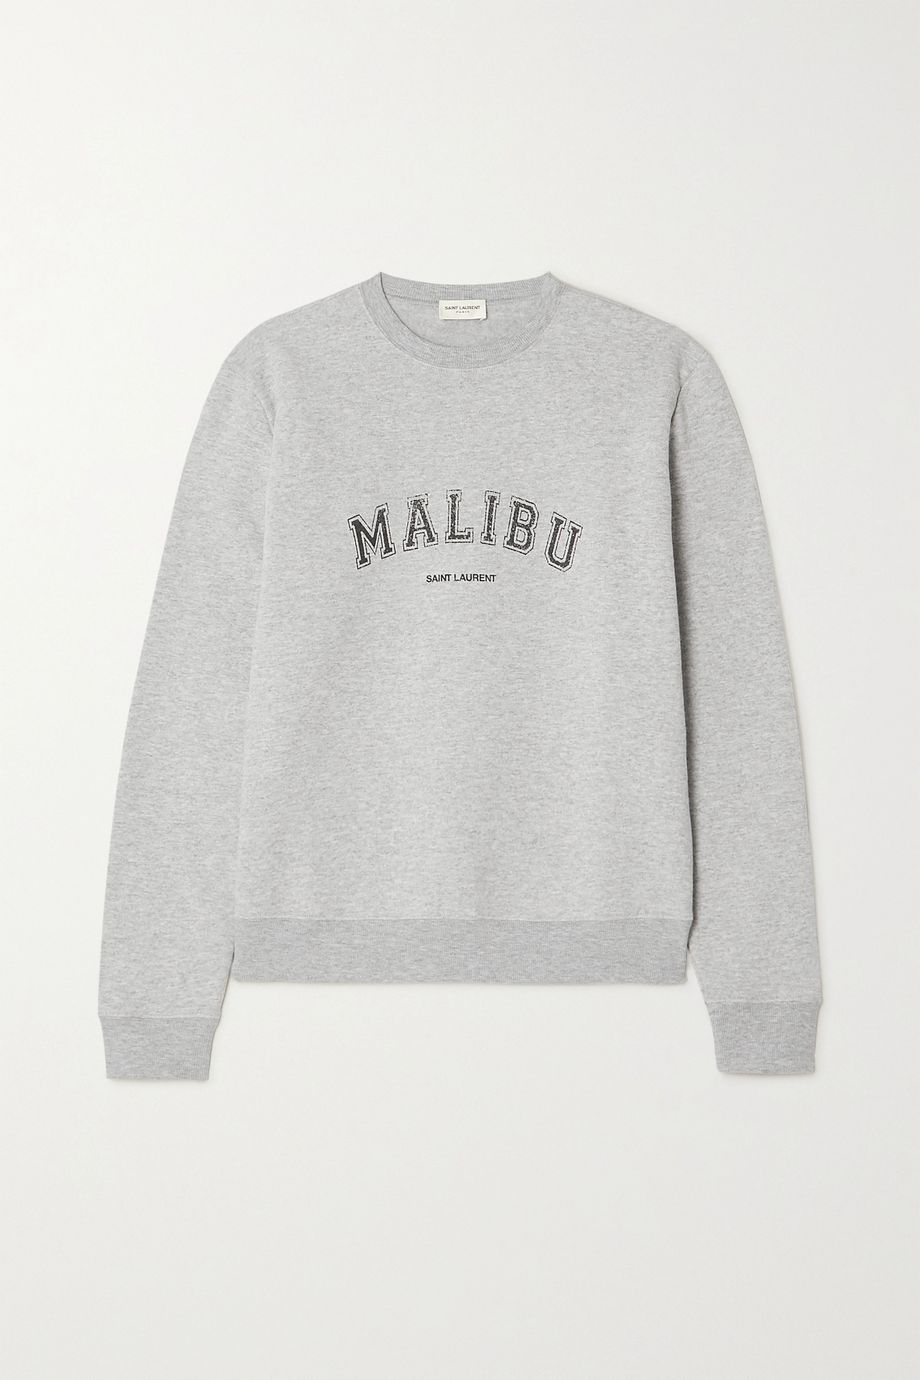 SAINT LAURENT Malibu printed cotton-blend jersey sweater